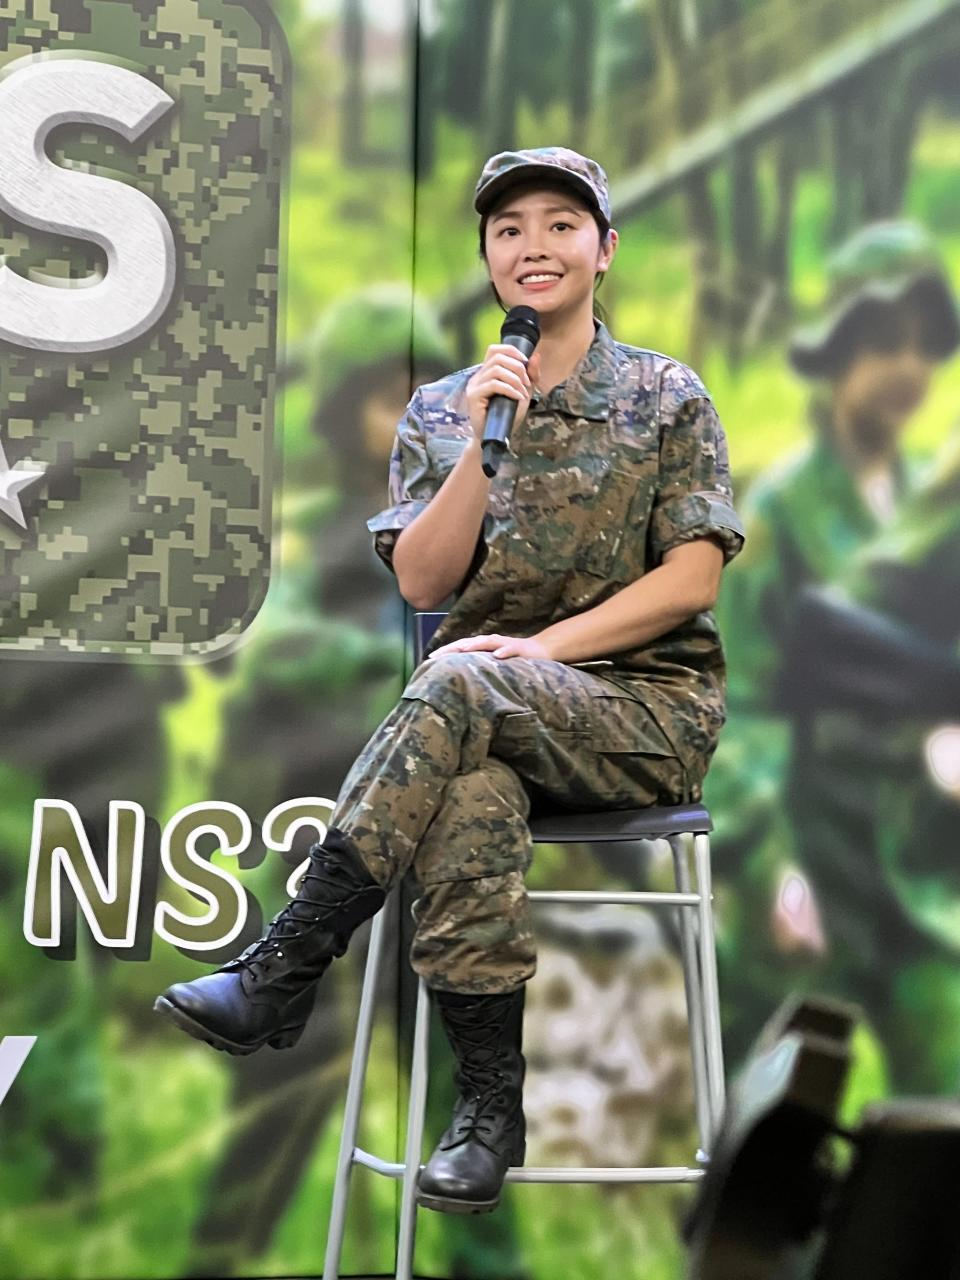 Actress Apple Chan, who will star as Lieutenant Zhang Xinyi in Jack Neo's film Ah Girls Go Army, at a press conference for the film on 29 Sept 2021. (Photo: mm2 Entertainment)